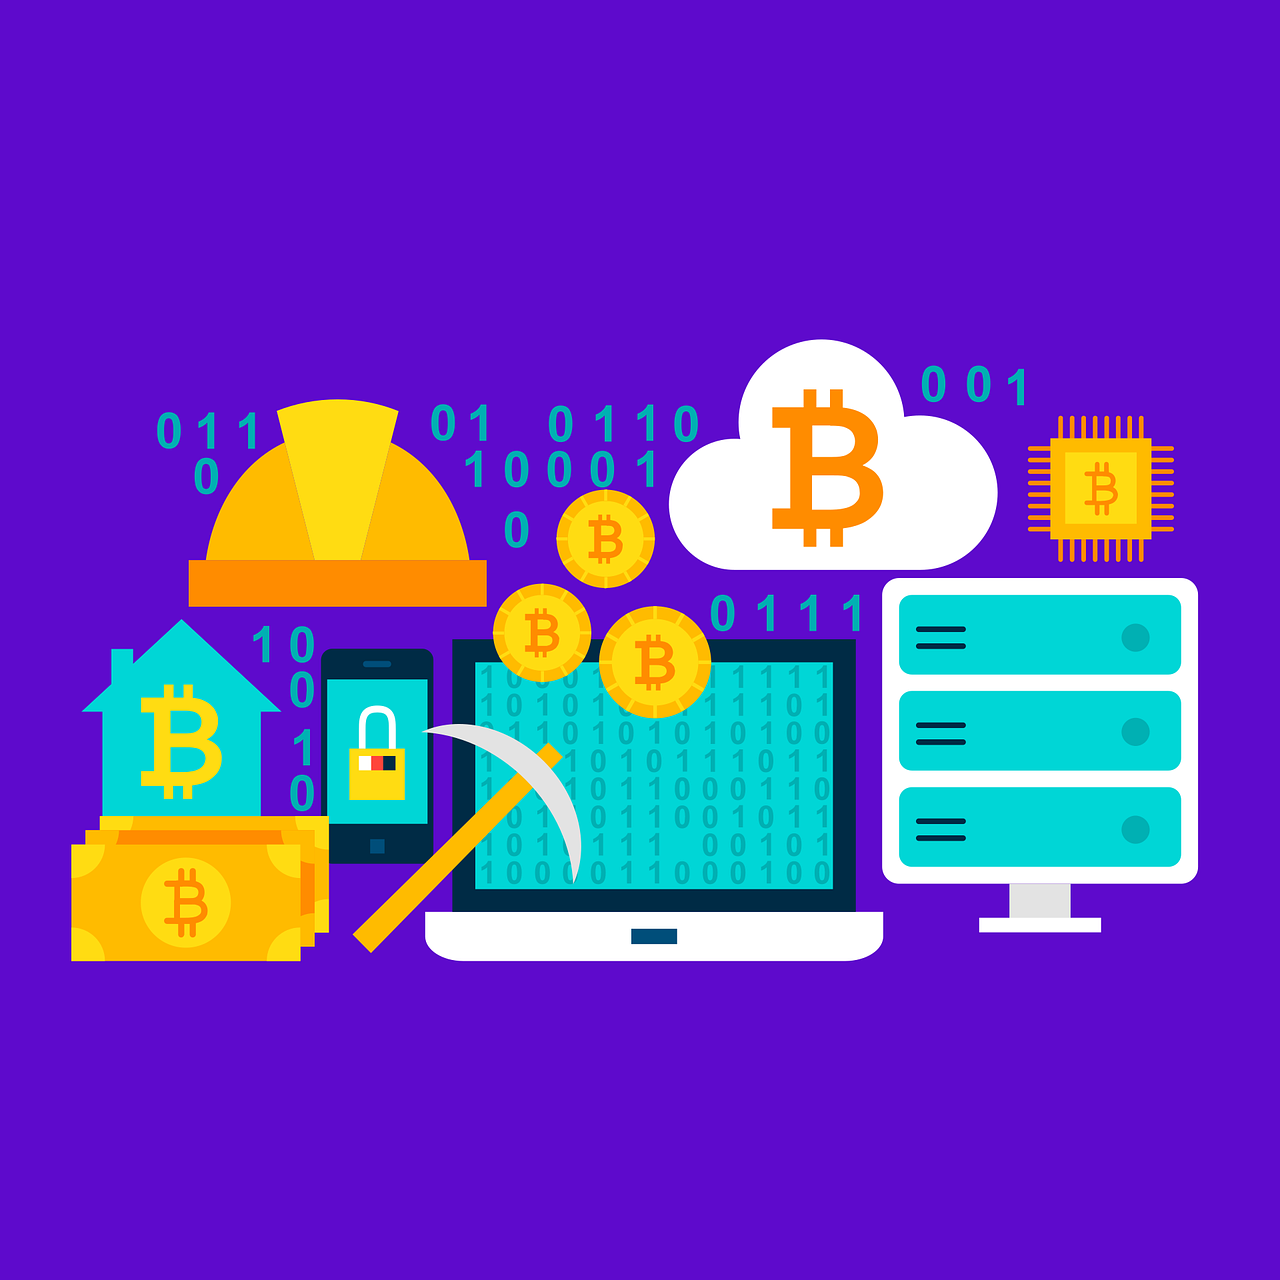 Digital currency is a menace to commercial banks, financial analyst opines